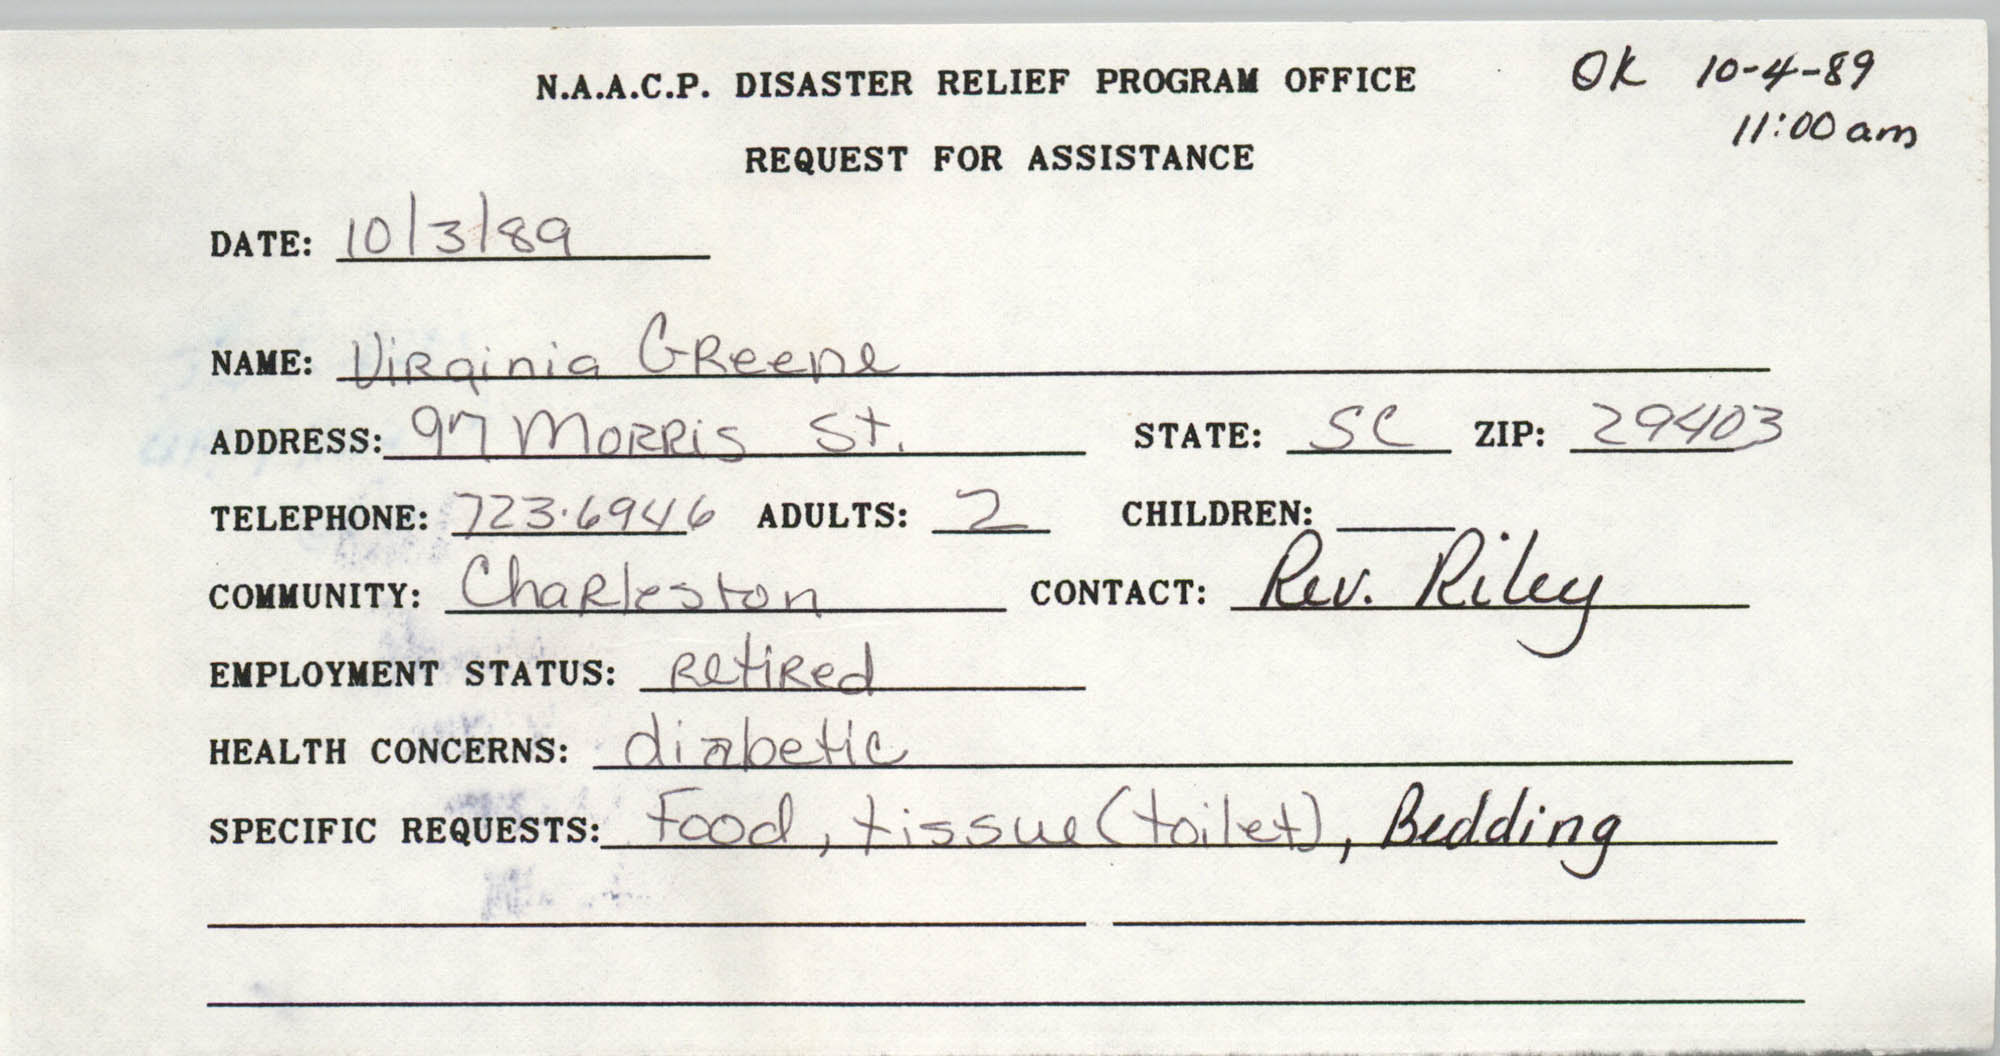 NAACP Disaster Relief Program Office, Hurricane Huge Requests for Assistance, 1989, Page 2